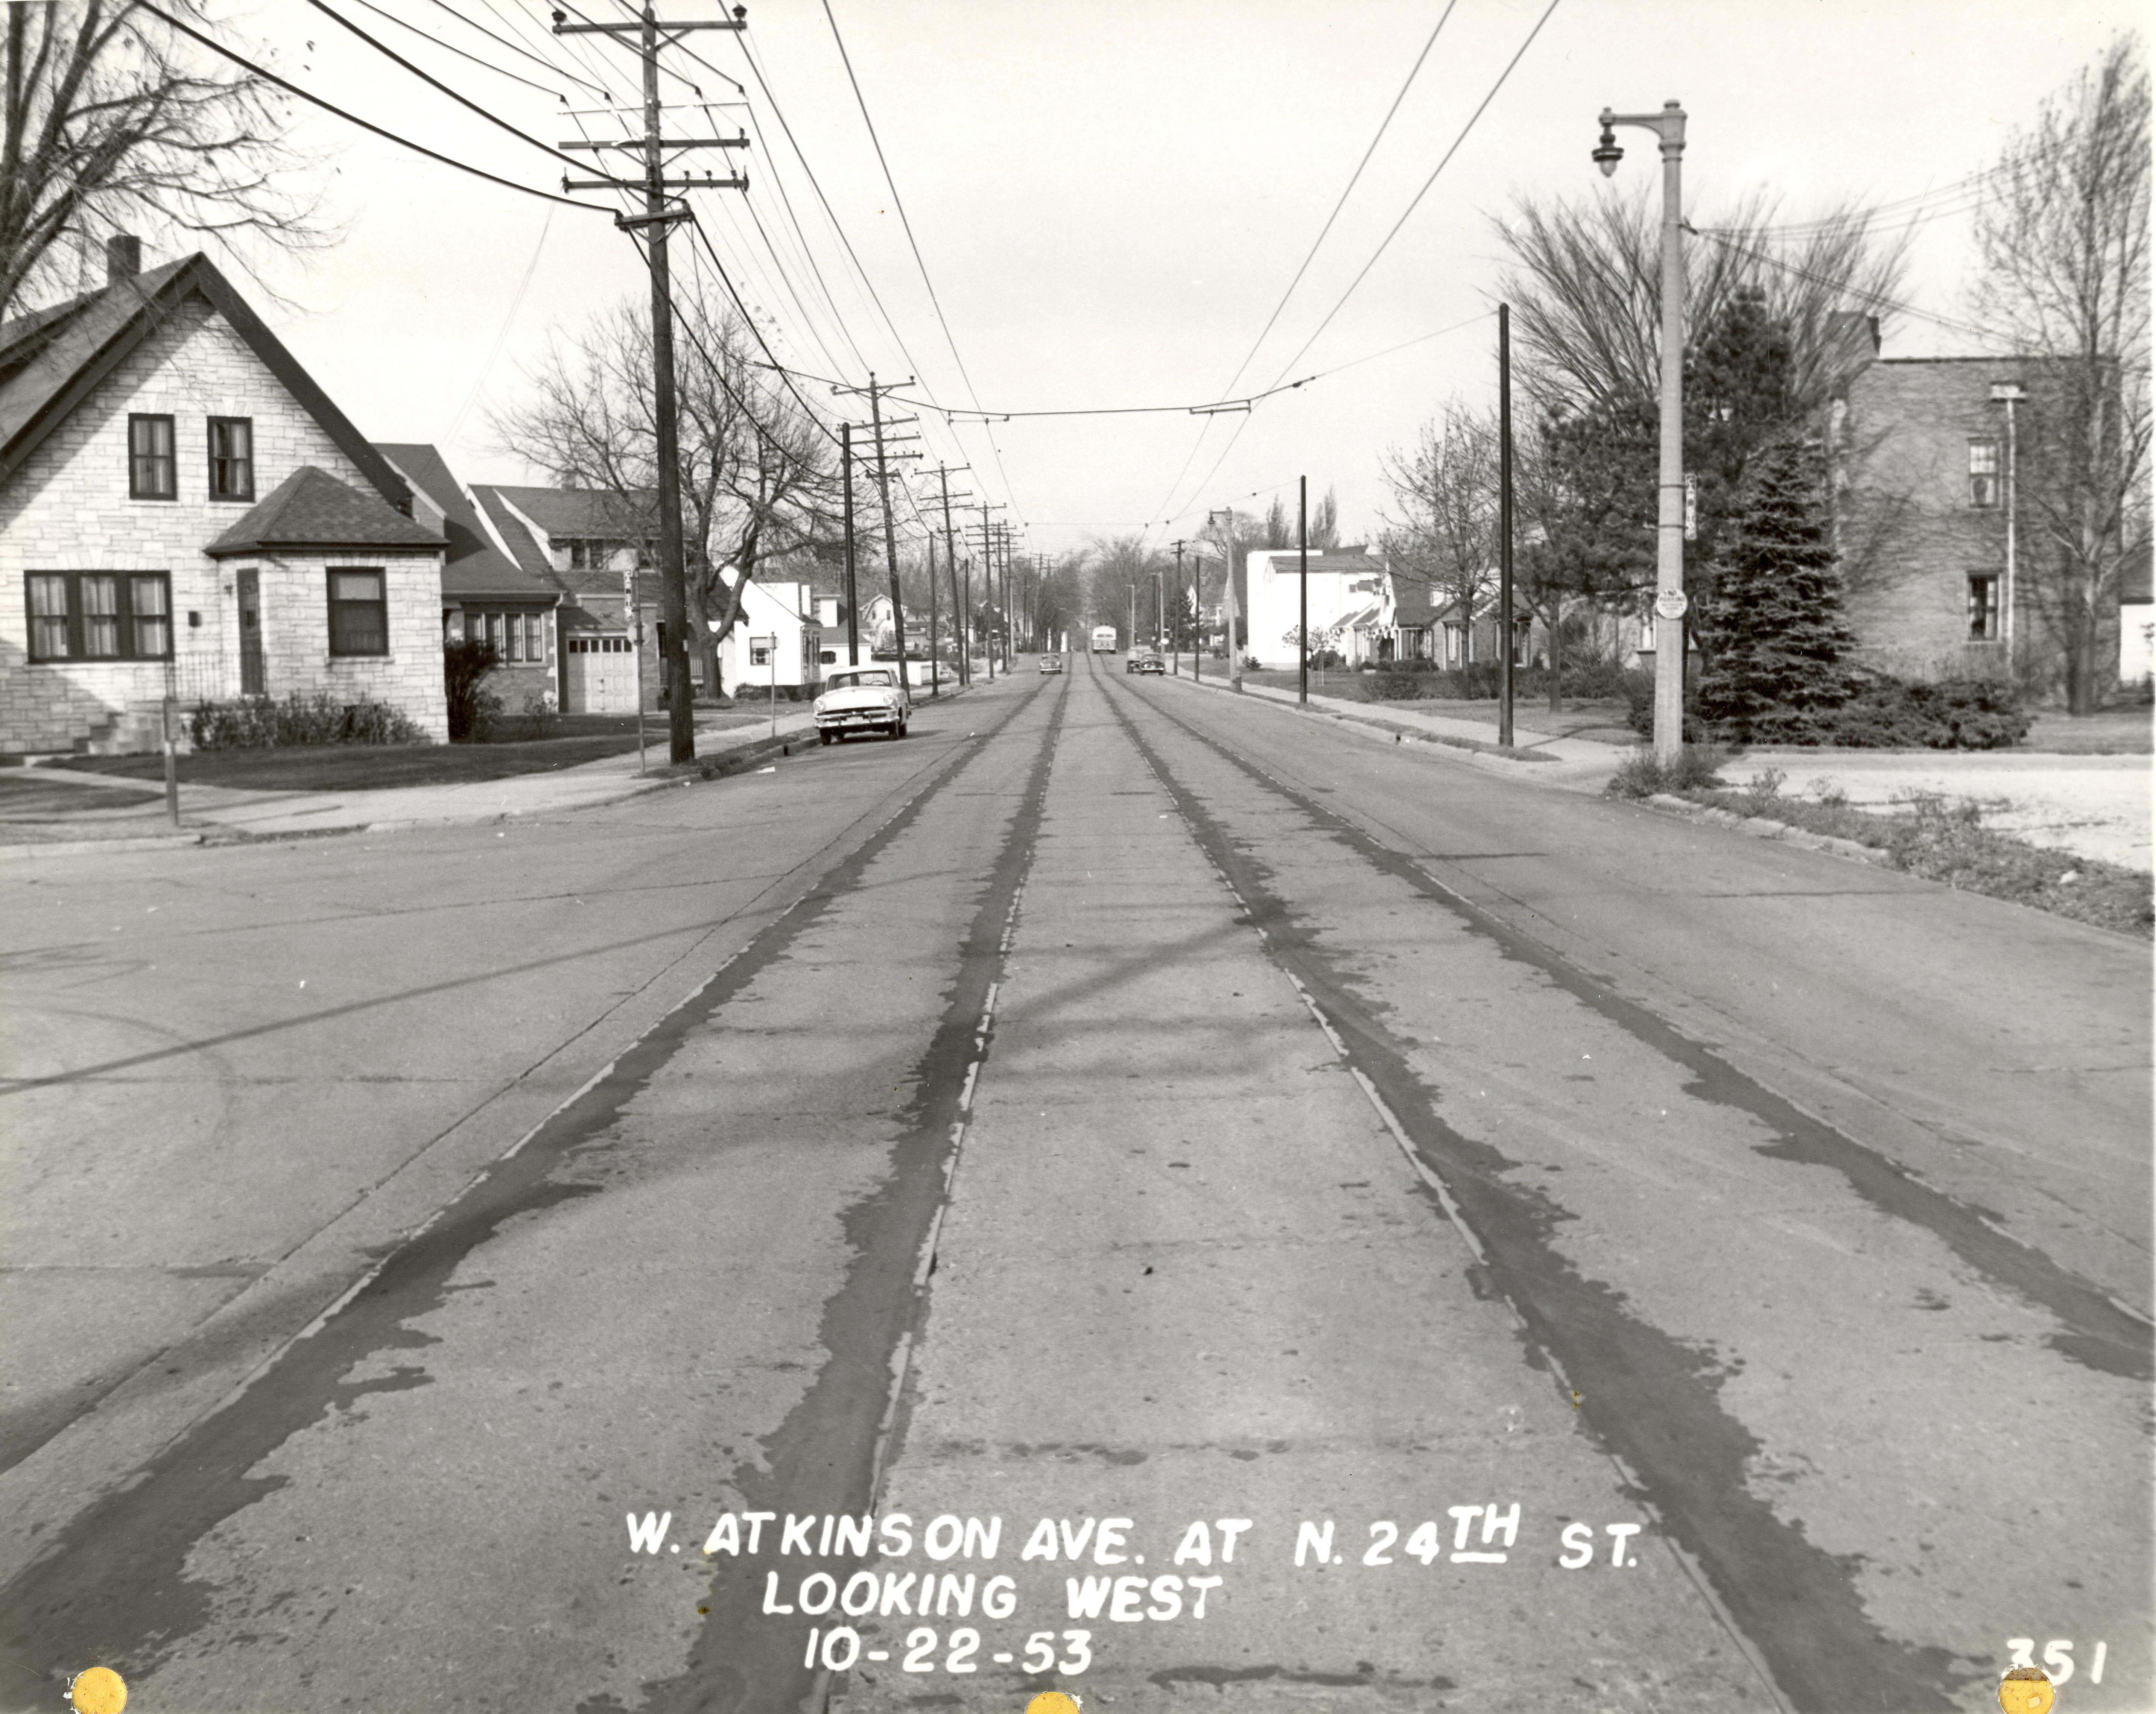 <table class=&quot;lightbox&quot;><tr><td colspan=2 class=&quot;lightbox-title&quot;>Looking Down Atkinson Avenue</td></tr><tr><td colspan=2 class=&quot;lightbox-caption&quot;>A view of Atkinson Avenue in 1953. The old streetcar rail lines have recently been paved over, but the overhead wires are still visible. </td></tr><tr><td colspan=2 class=&quot;lightbox-spacer&quot;></td></tr><tr class=&quot;lightbox-detail&quot;><td class=&quot;cell-title&quot;>Source: </td><td class=&quot;cell-value&quot;>From the Historic Photo Collection of the Milwaukee Public Library. Reprinted with permission. <br /><a href=&quot;http://content.mpl.org/cdm/singleitem/collection/HstoricPho/id/918/rec/84&quot; target=&quot;_blank&quot;>Milwaukee Public Library</a></td></tr><tr class=&quot;filler-row&quot;><td colspan=2>&nbsp;</td></tr></table>